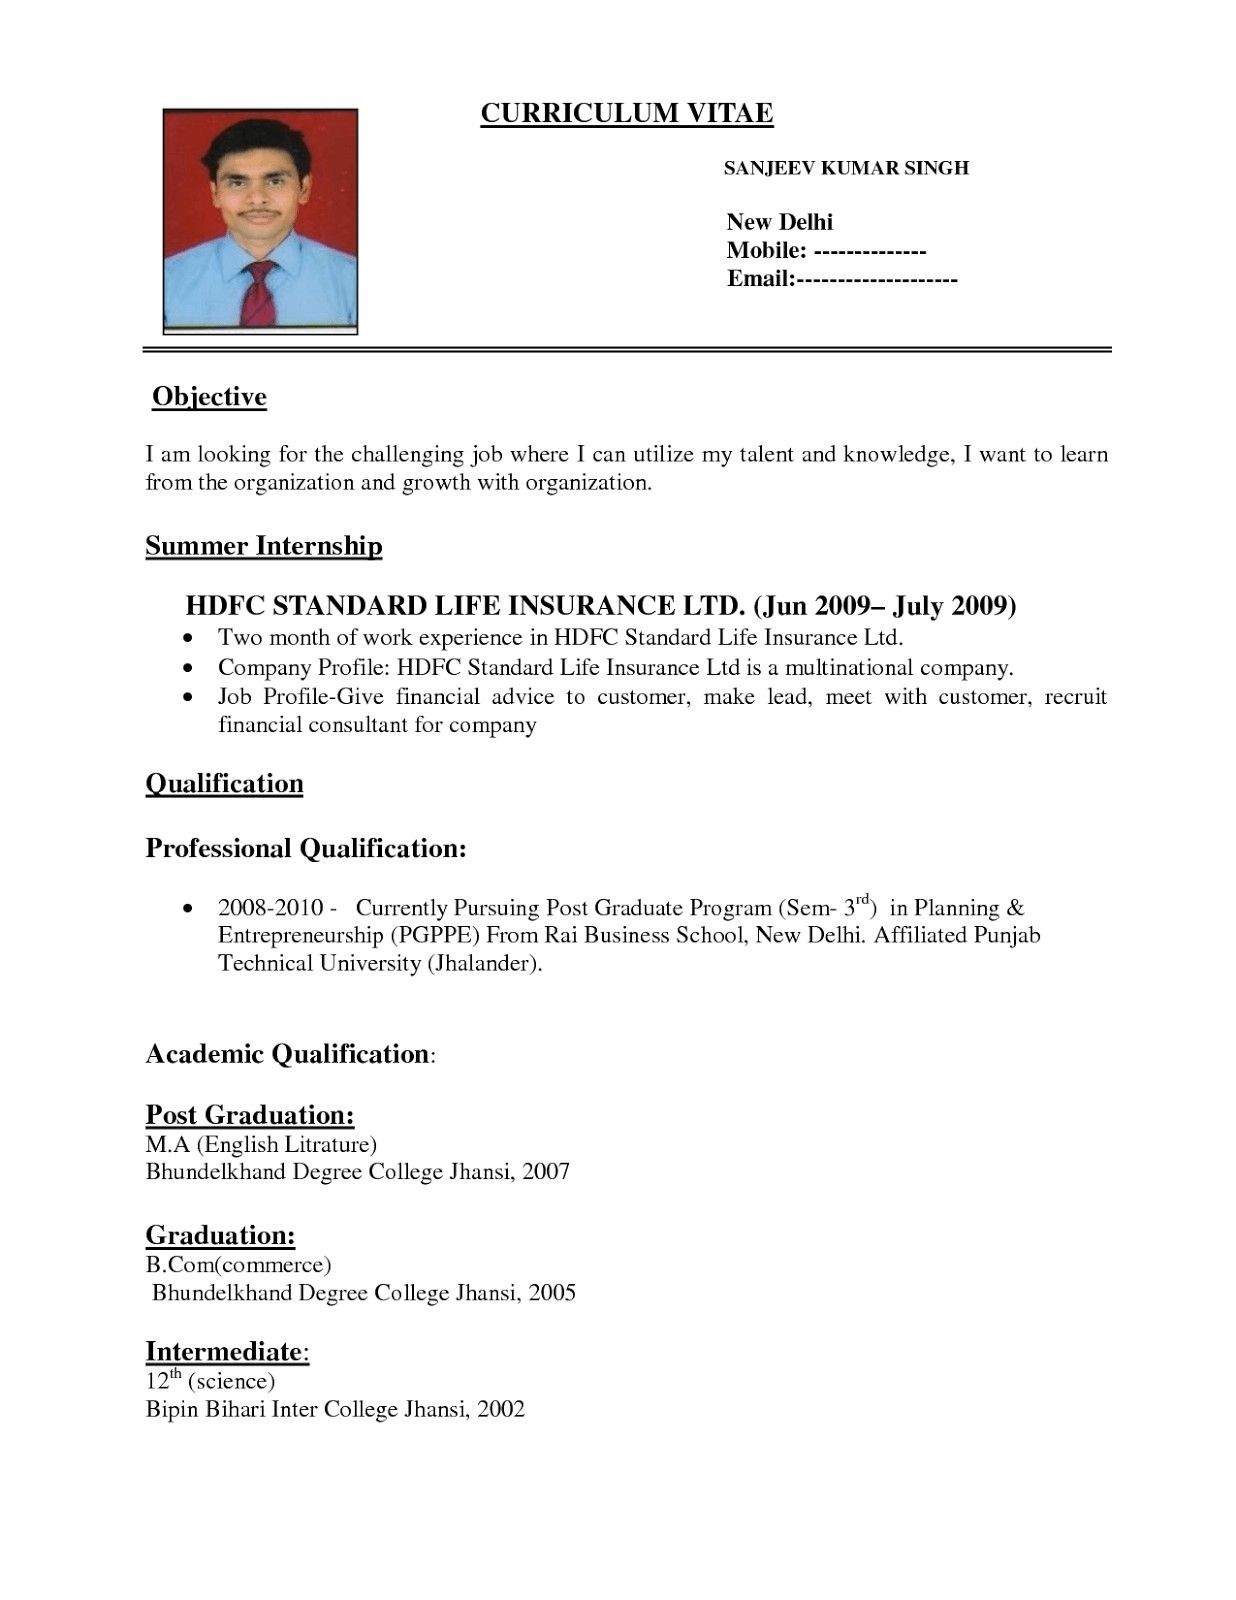 Resume Format Job Interview In 2020 Sample Resume Format First